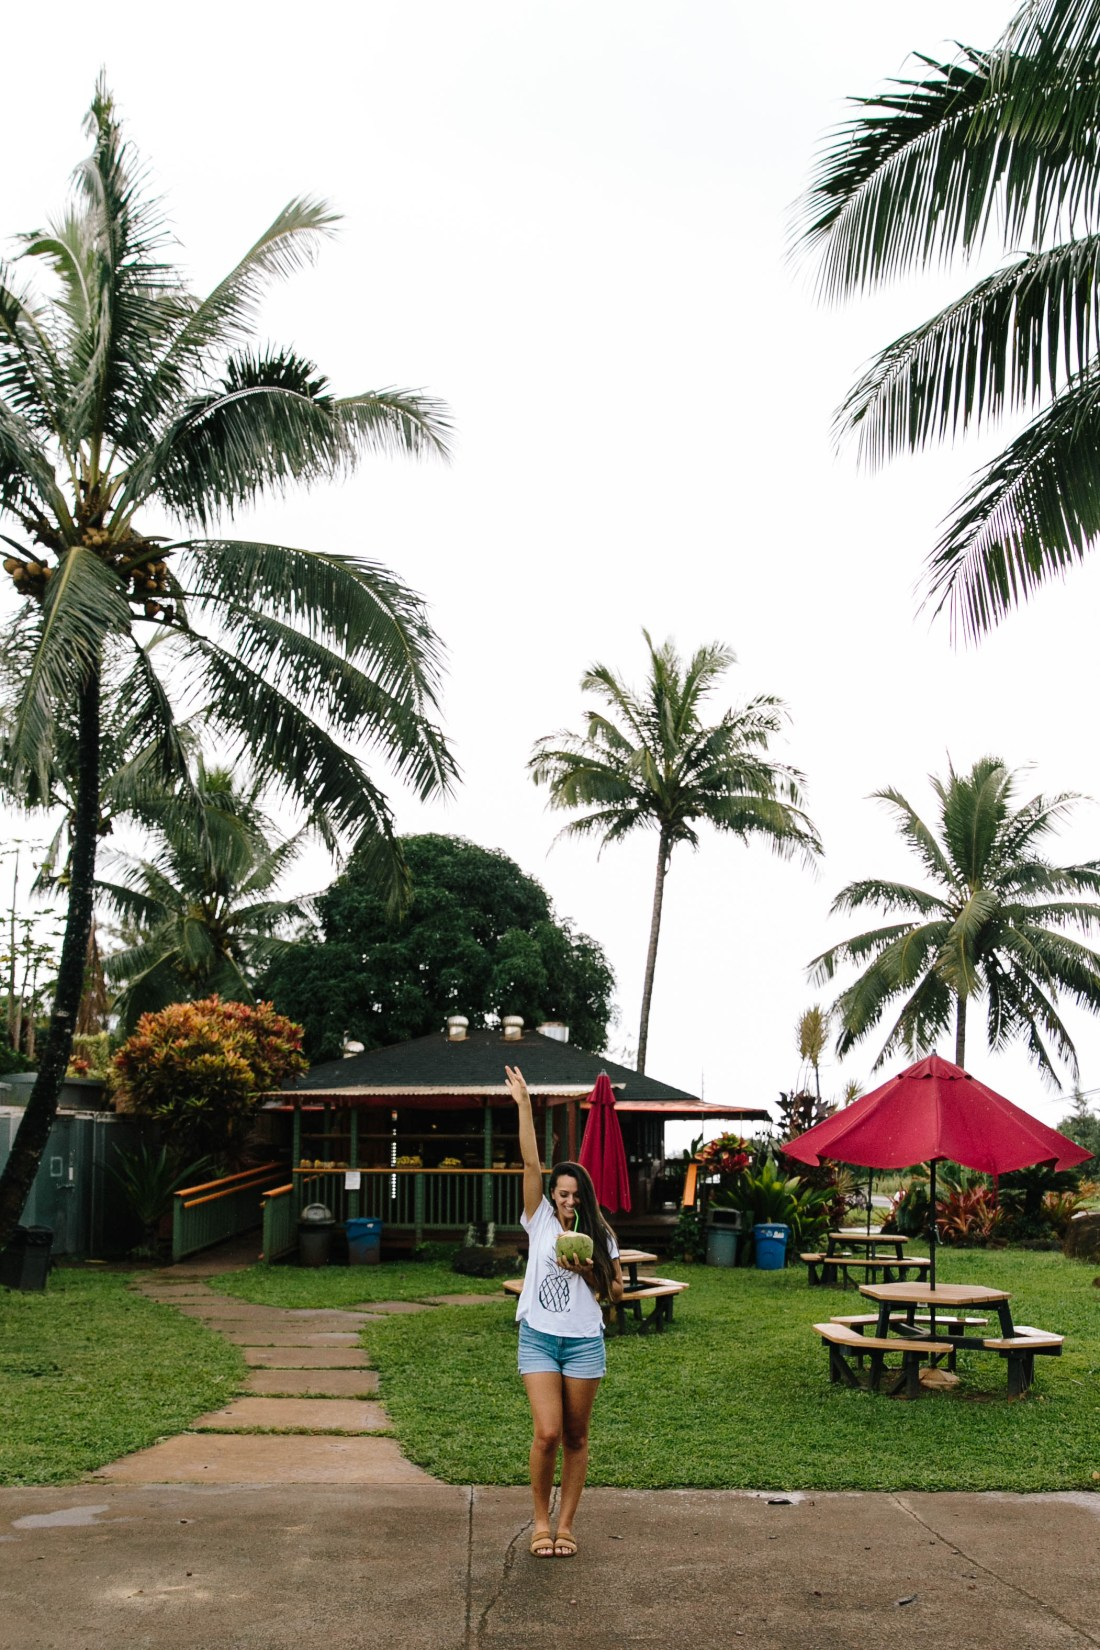 Travel Guide to Kauai, Hawaii   Travel Tips for Kauai   Packing List for Kauai   Helpful Tips for Traveling to Kauai   Kauai Travel Guide   Hawaii Travel Guide   Why You Should Visit Hawaii   Napali Coast Boat Excursion   Activities To Do in Kauai   Best Vacation Places in the World via @elanaloo + elanaloo.com